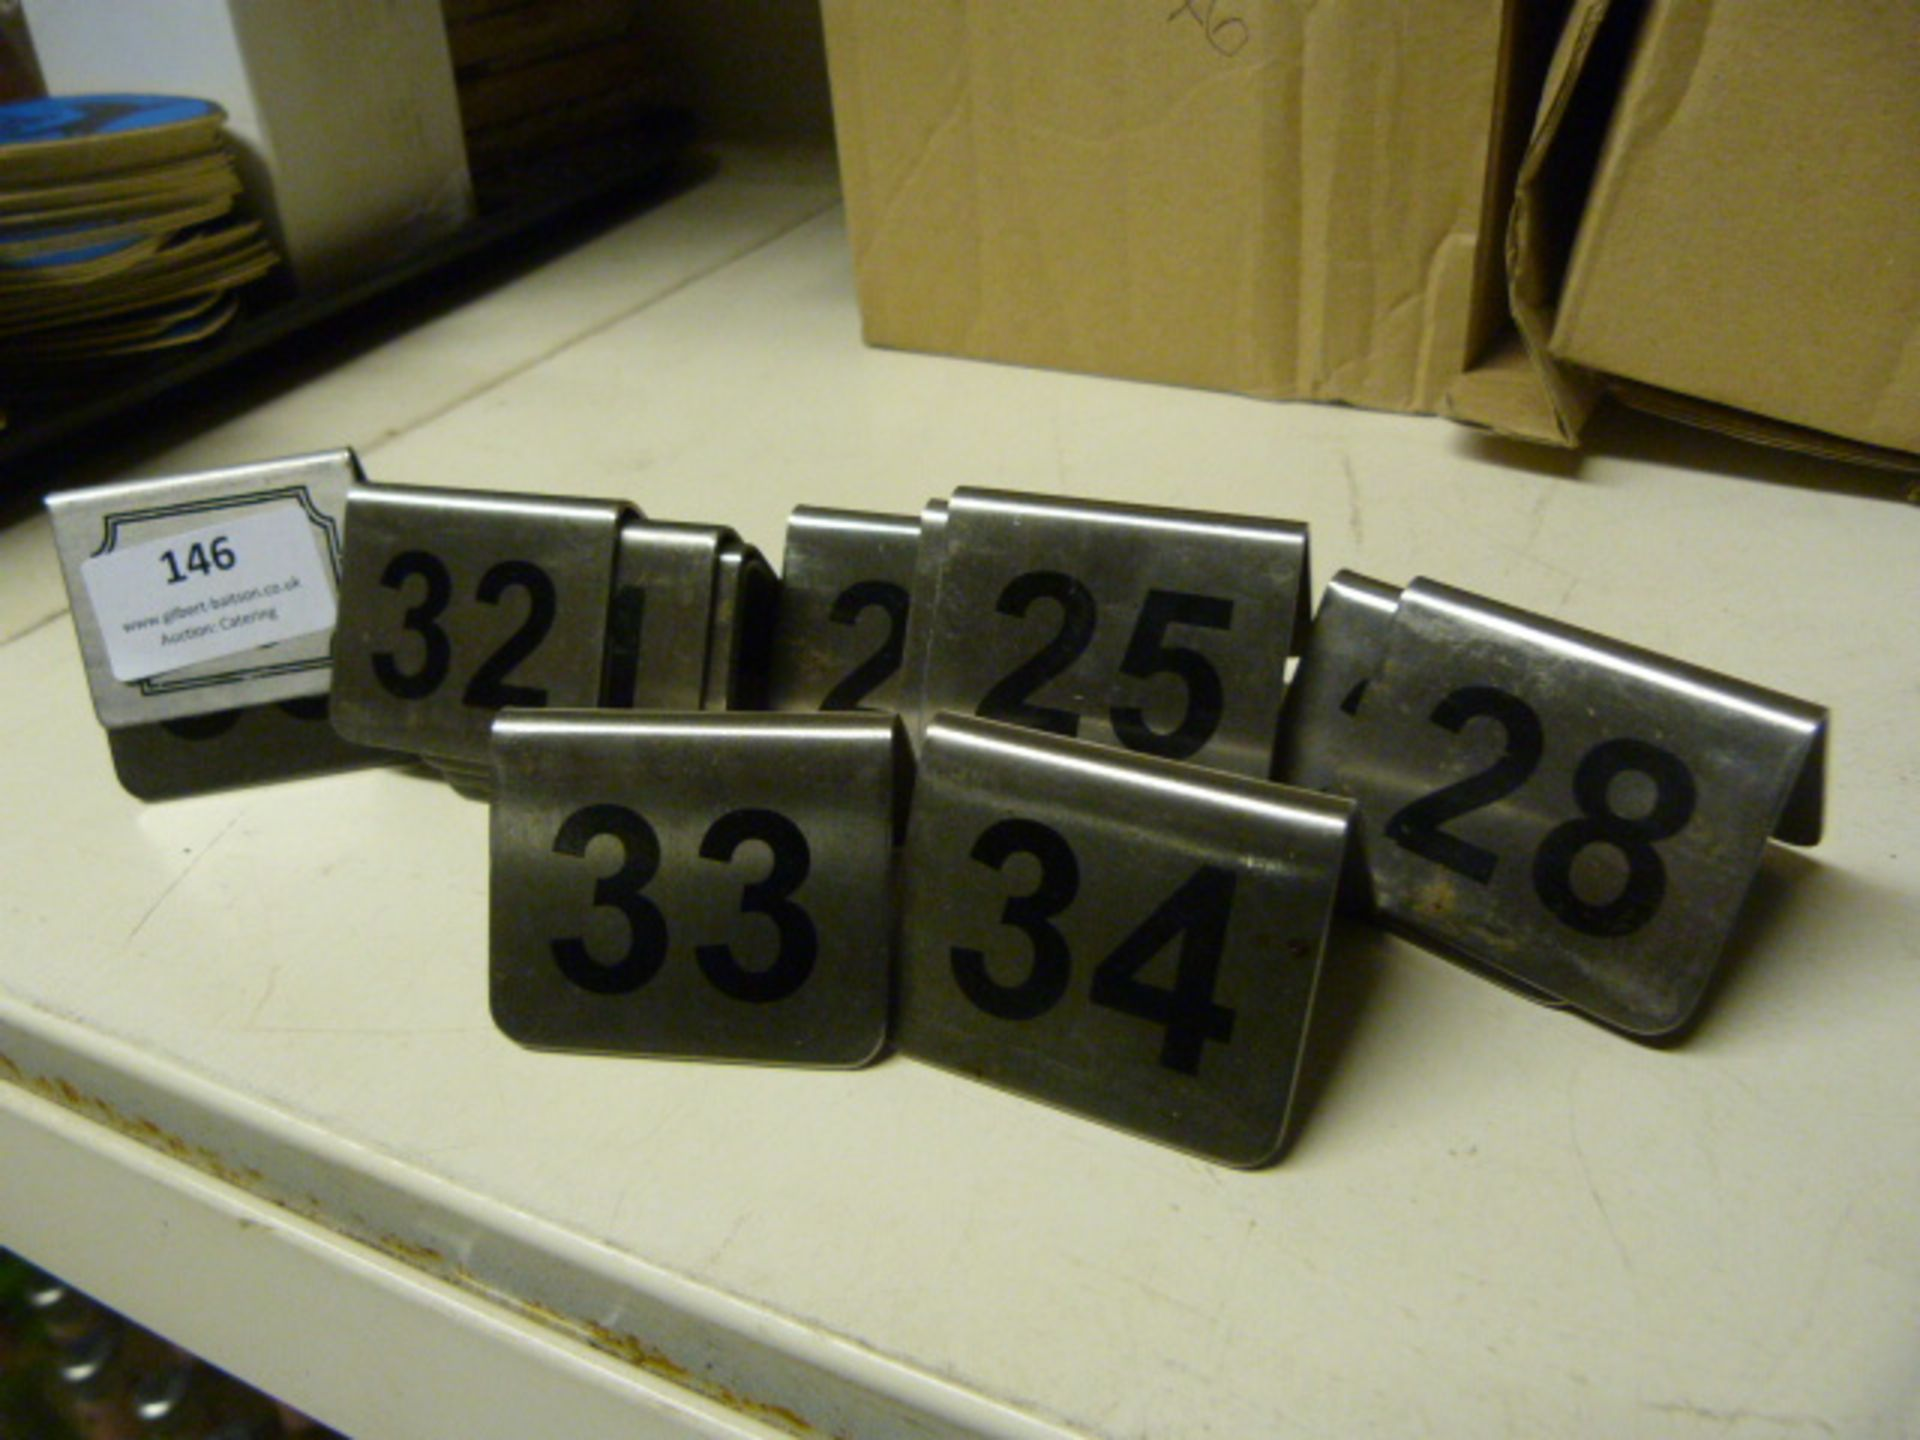 *14 Table Numbers